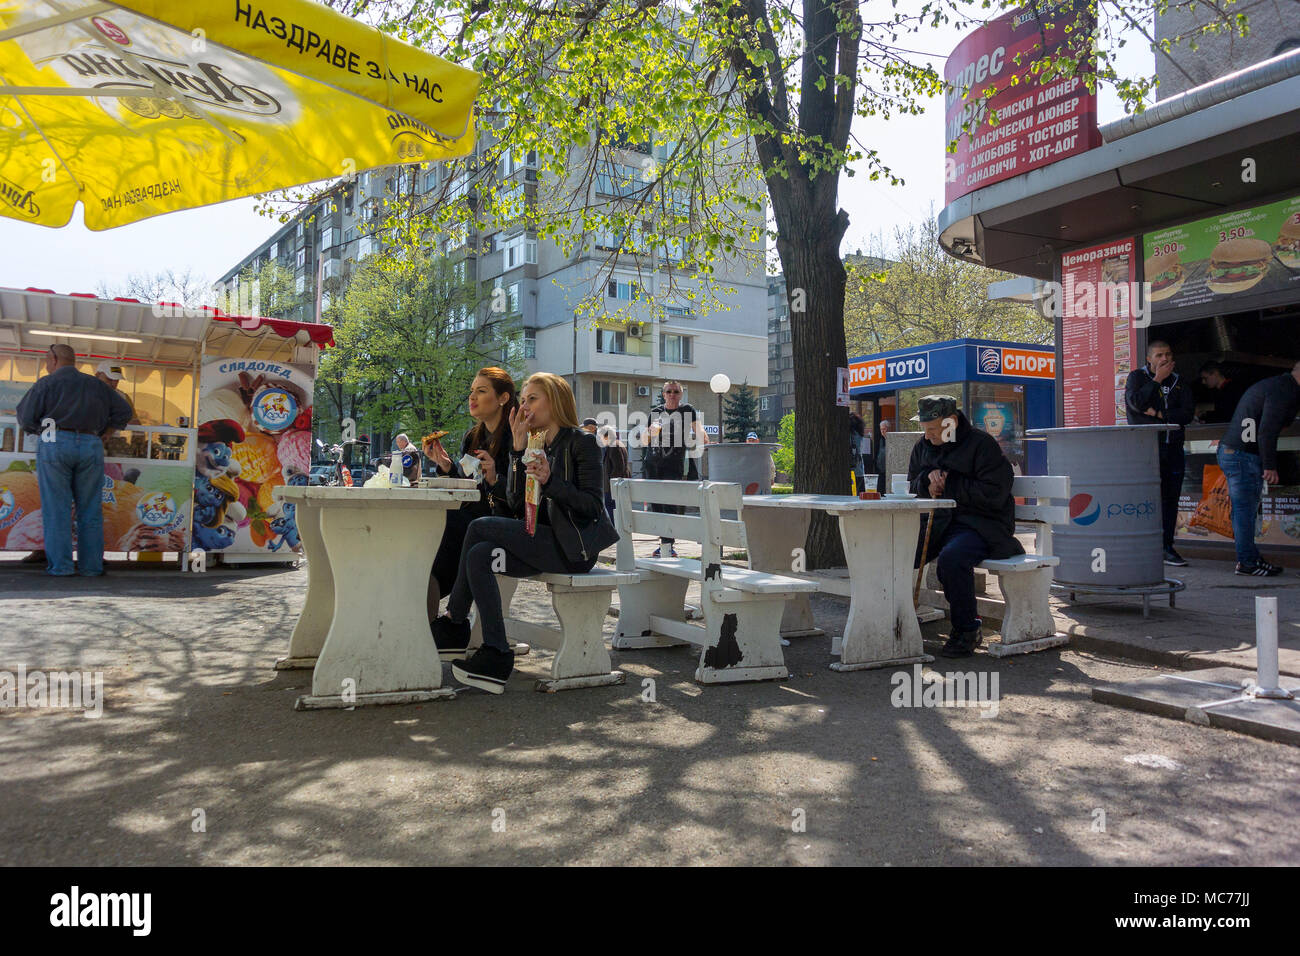 Yambol, Bulgaria. 13th Apr, 2018.Sunshine and icecreams  white blossom with blue sky light warm wind as a horse and cart travels along the street, market trader selling home grown goods. Credit: Clifford Norton/Alamy Live News - Stock Image